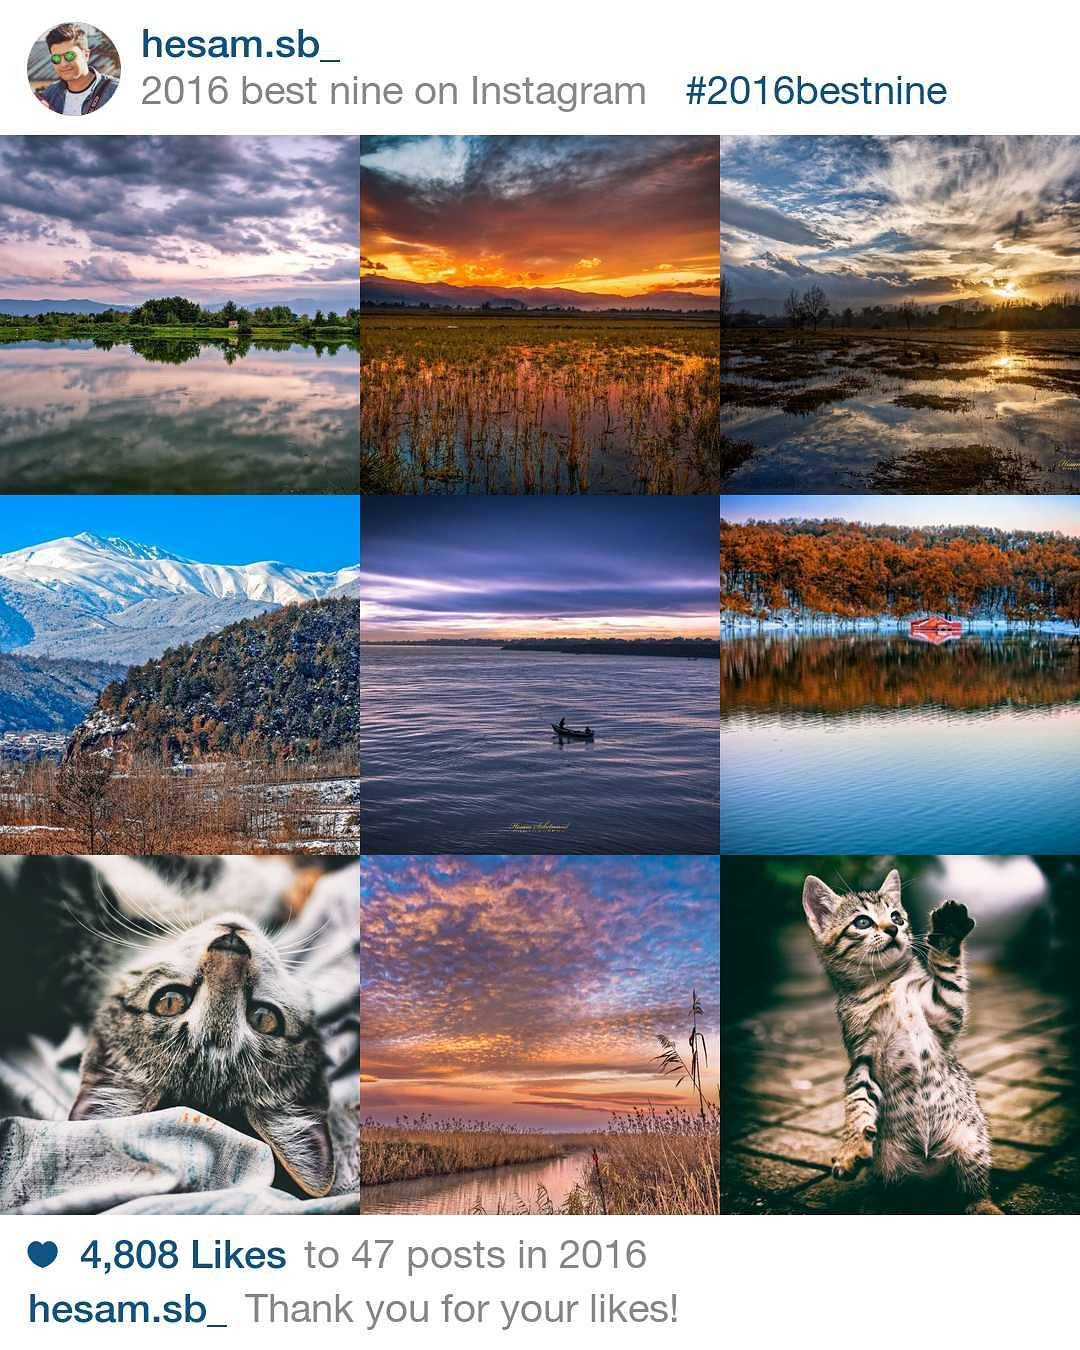 my #2016bestnine  in instagram ! . thank you for your likes. #thebestiscoming #landscapephotography